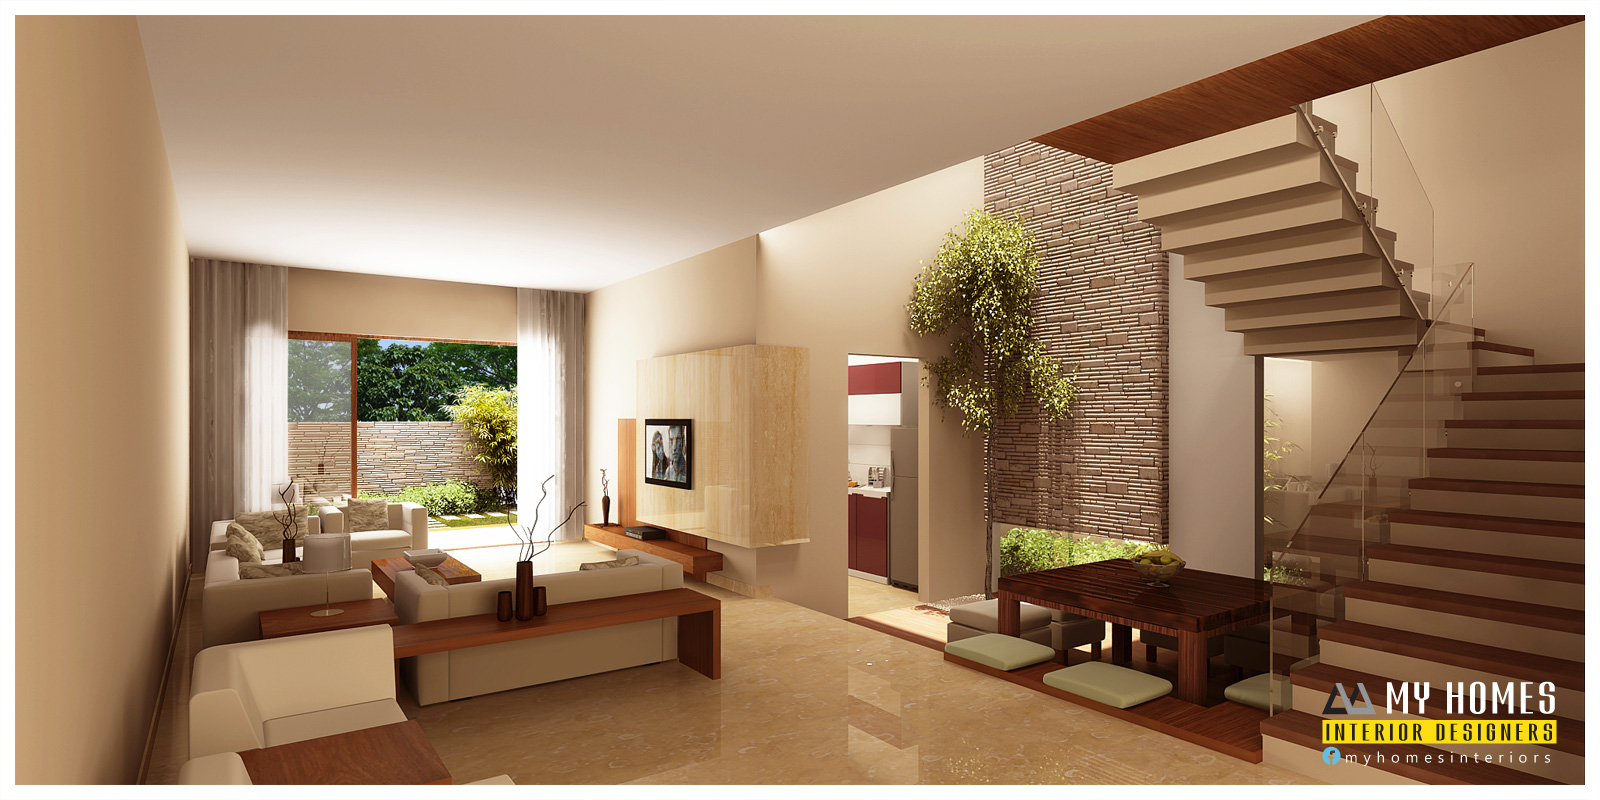 Interior design of house in kerala home design and style - Condominium interior design ideas ...